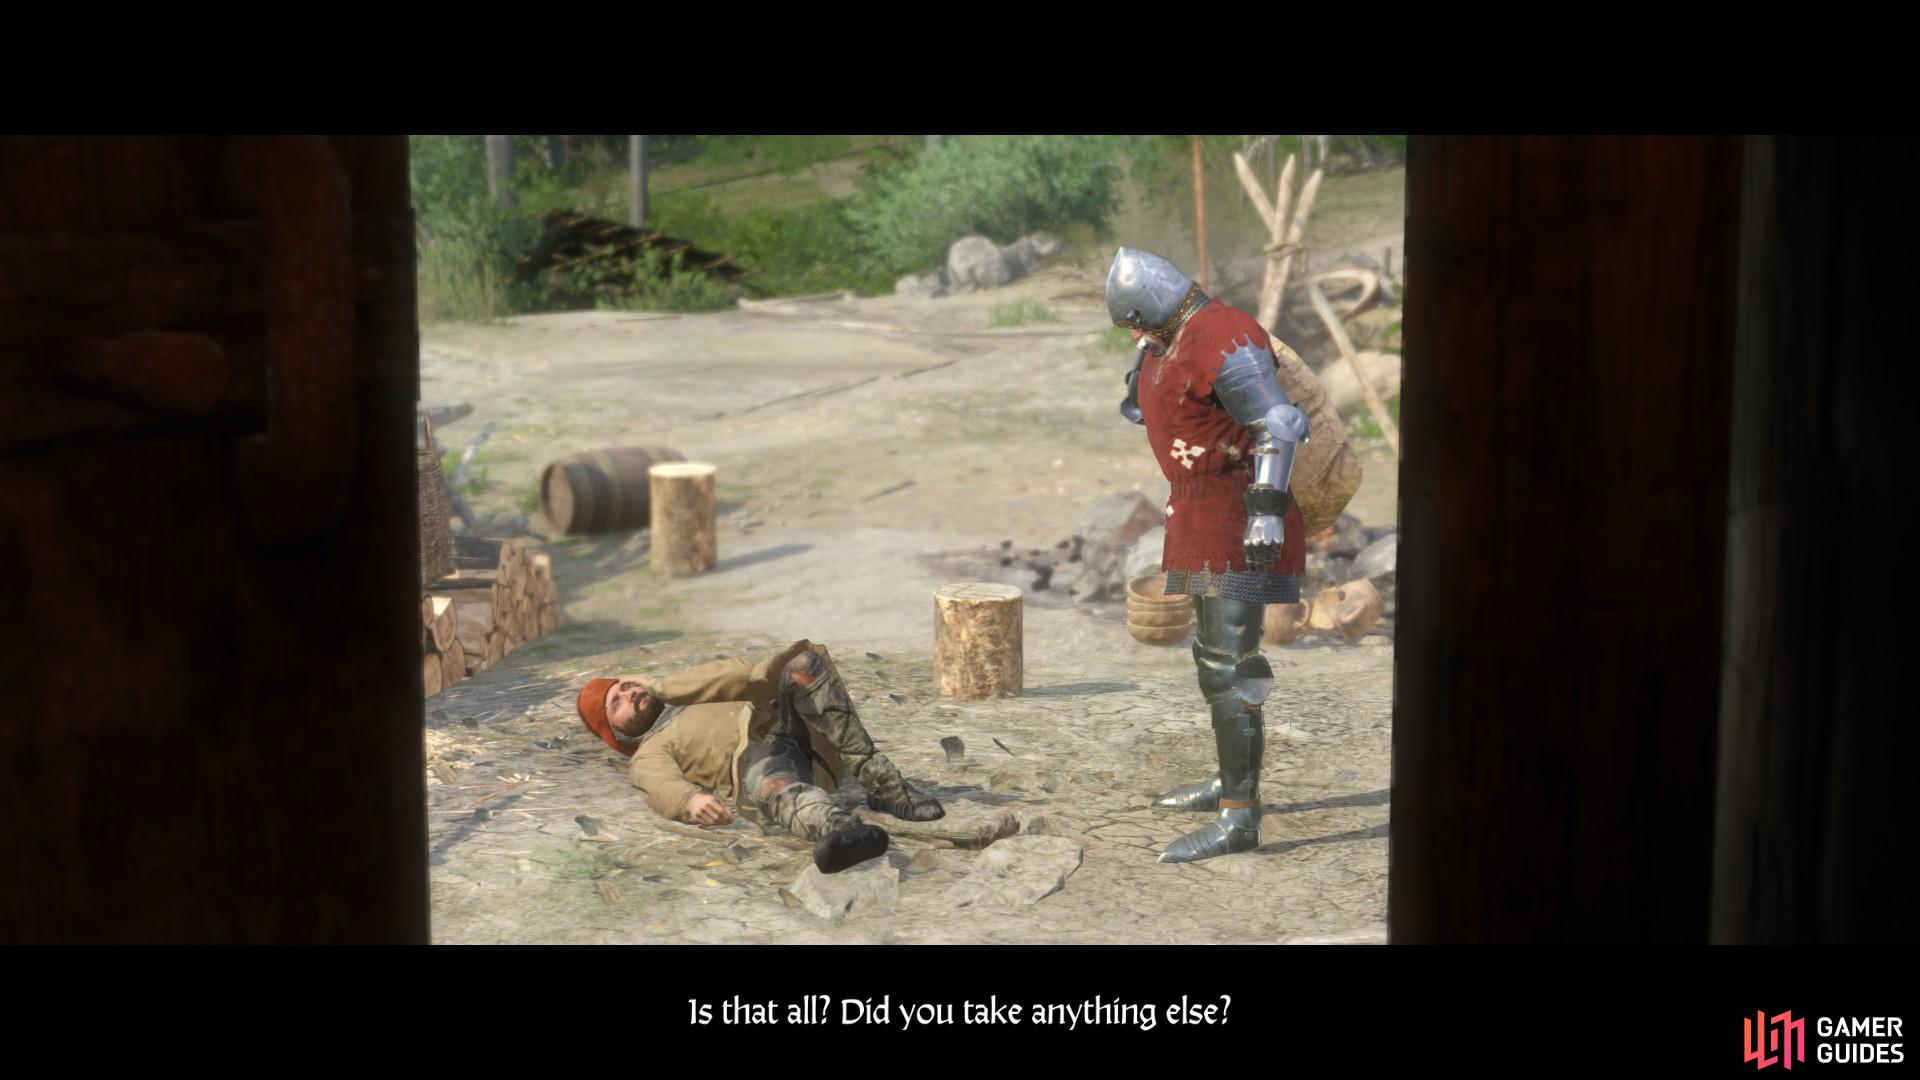 When you are done questioning the wounded mercenary a cut scene will follow in which the mysterious German knight shows up and takes a bag of coin.